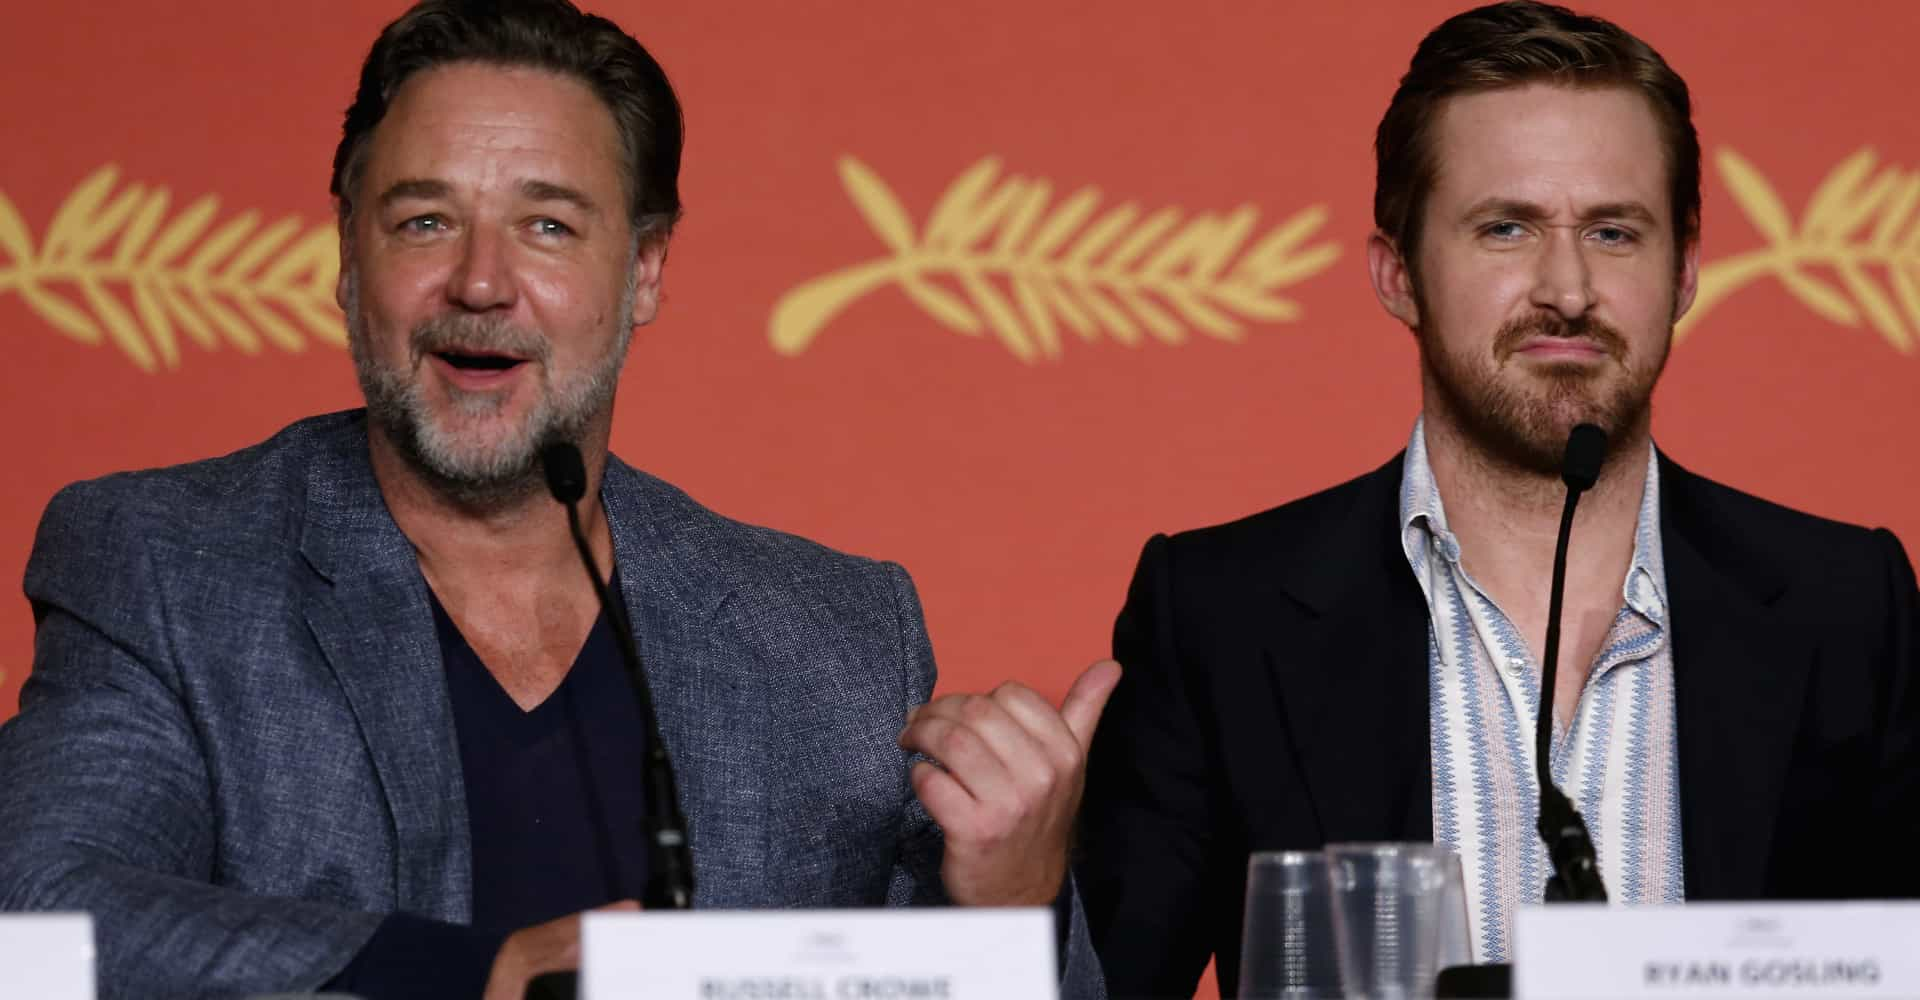 Russell Crowe vs Ryan Gosling: Who is your on-screen crush?